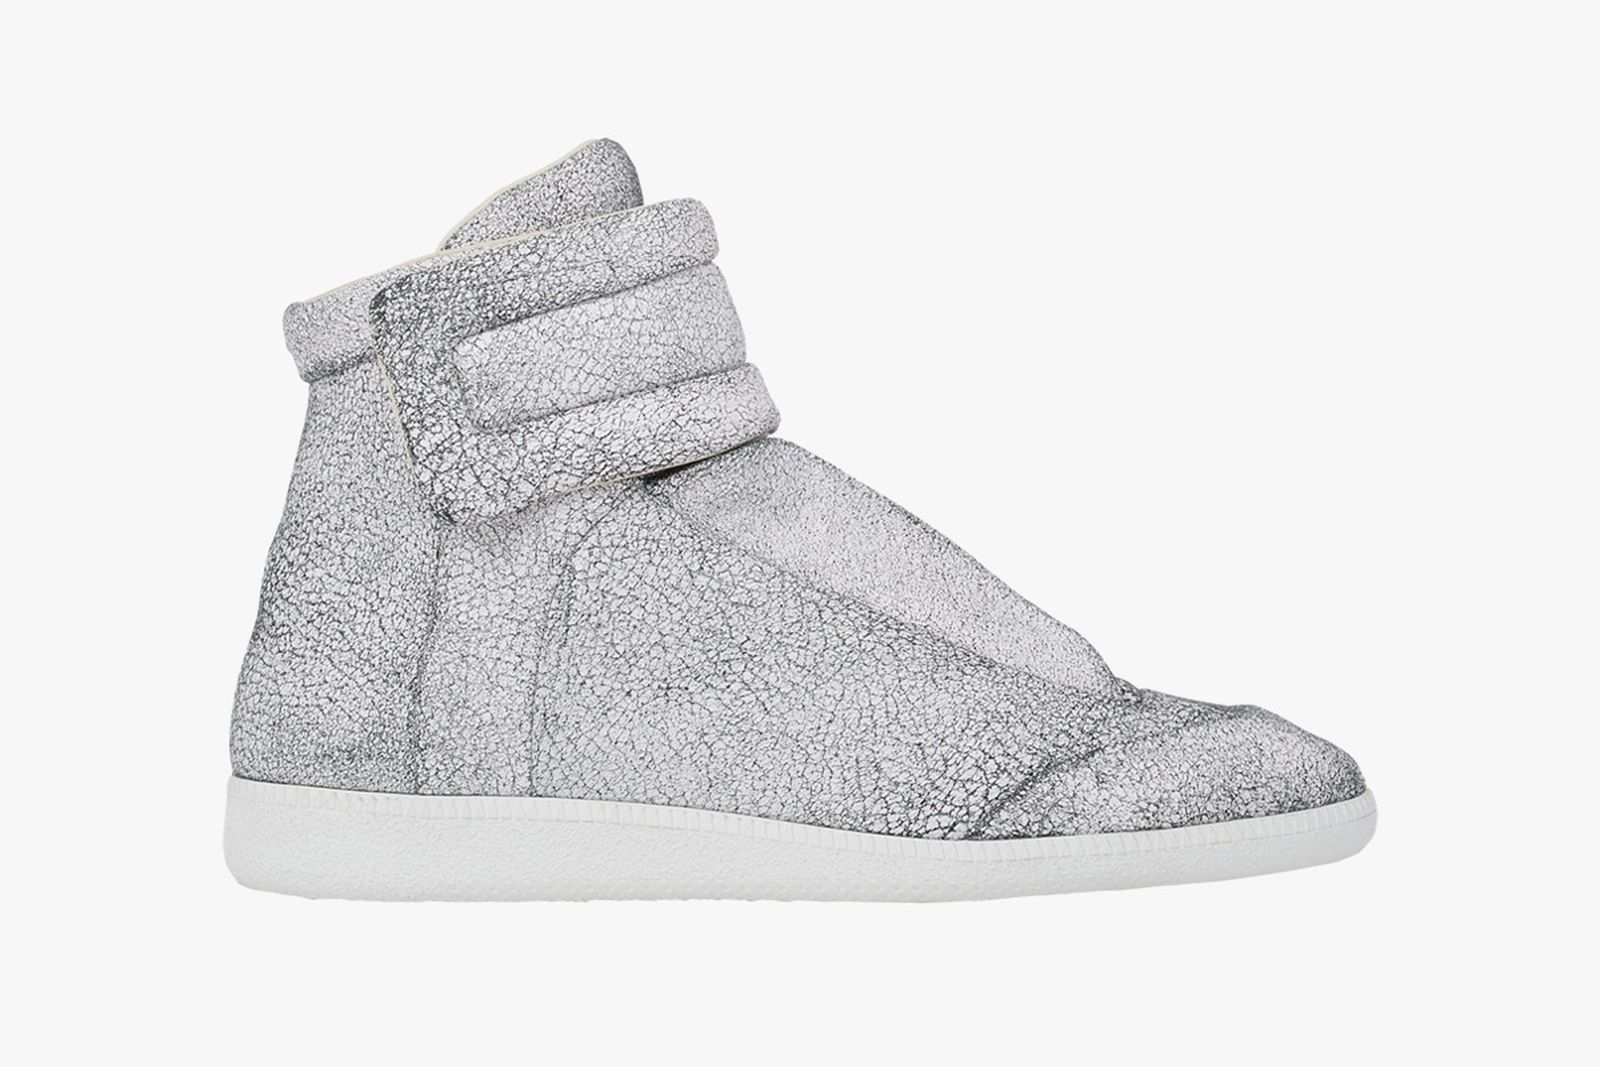 maison-margiela-future-cracked-high-top-sneaker-2